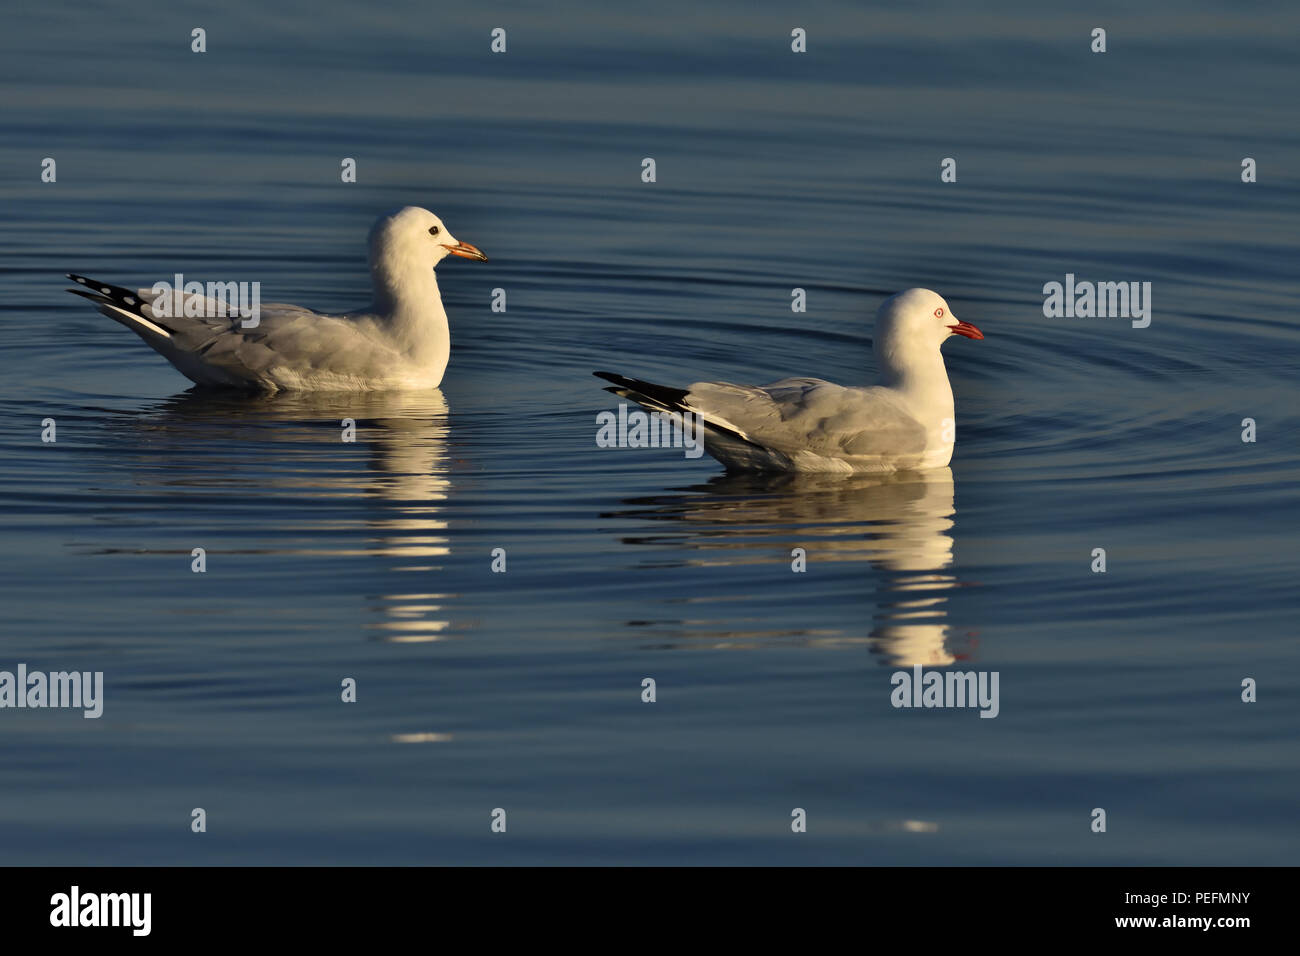 An Australian, Queensland Immature and Adult Silver Gulls ( Larus novaehollandiae ) floating in the ocean - Stock Image